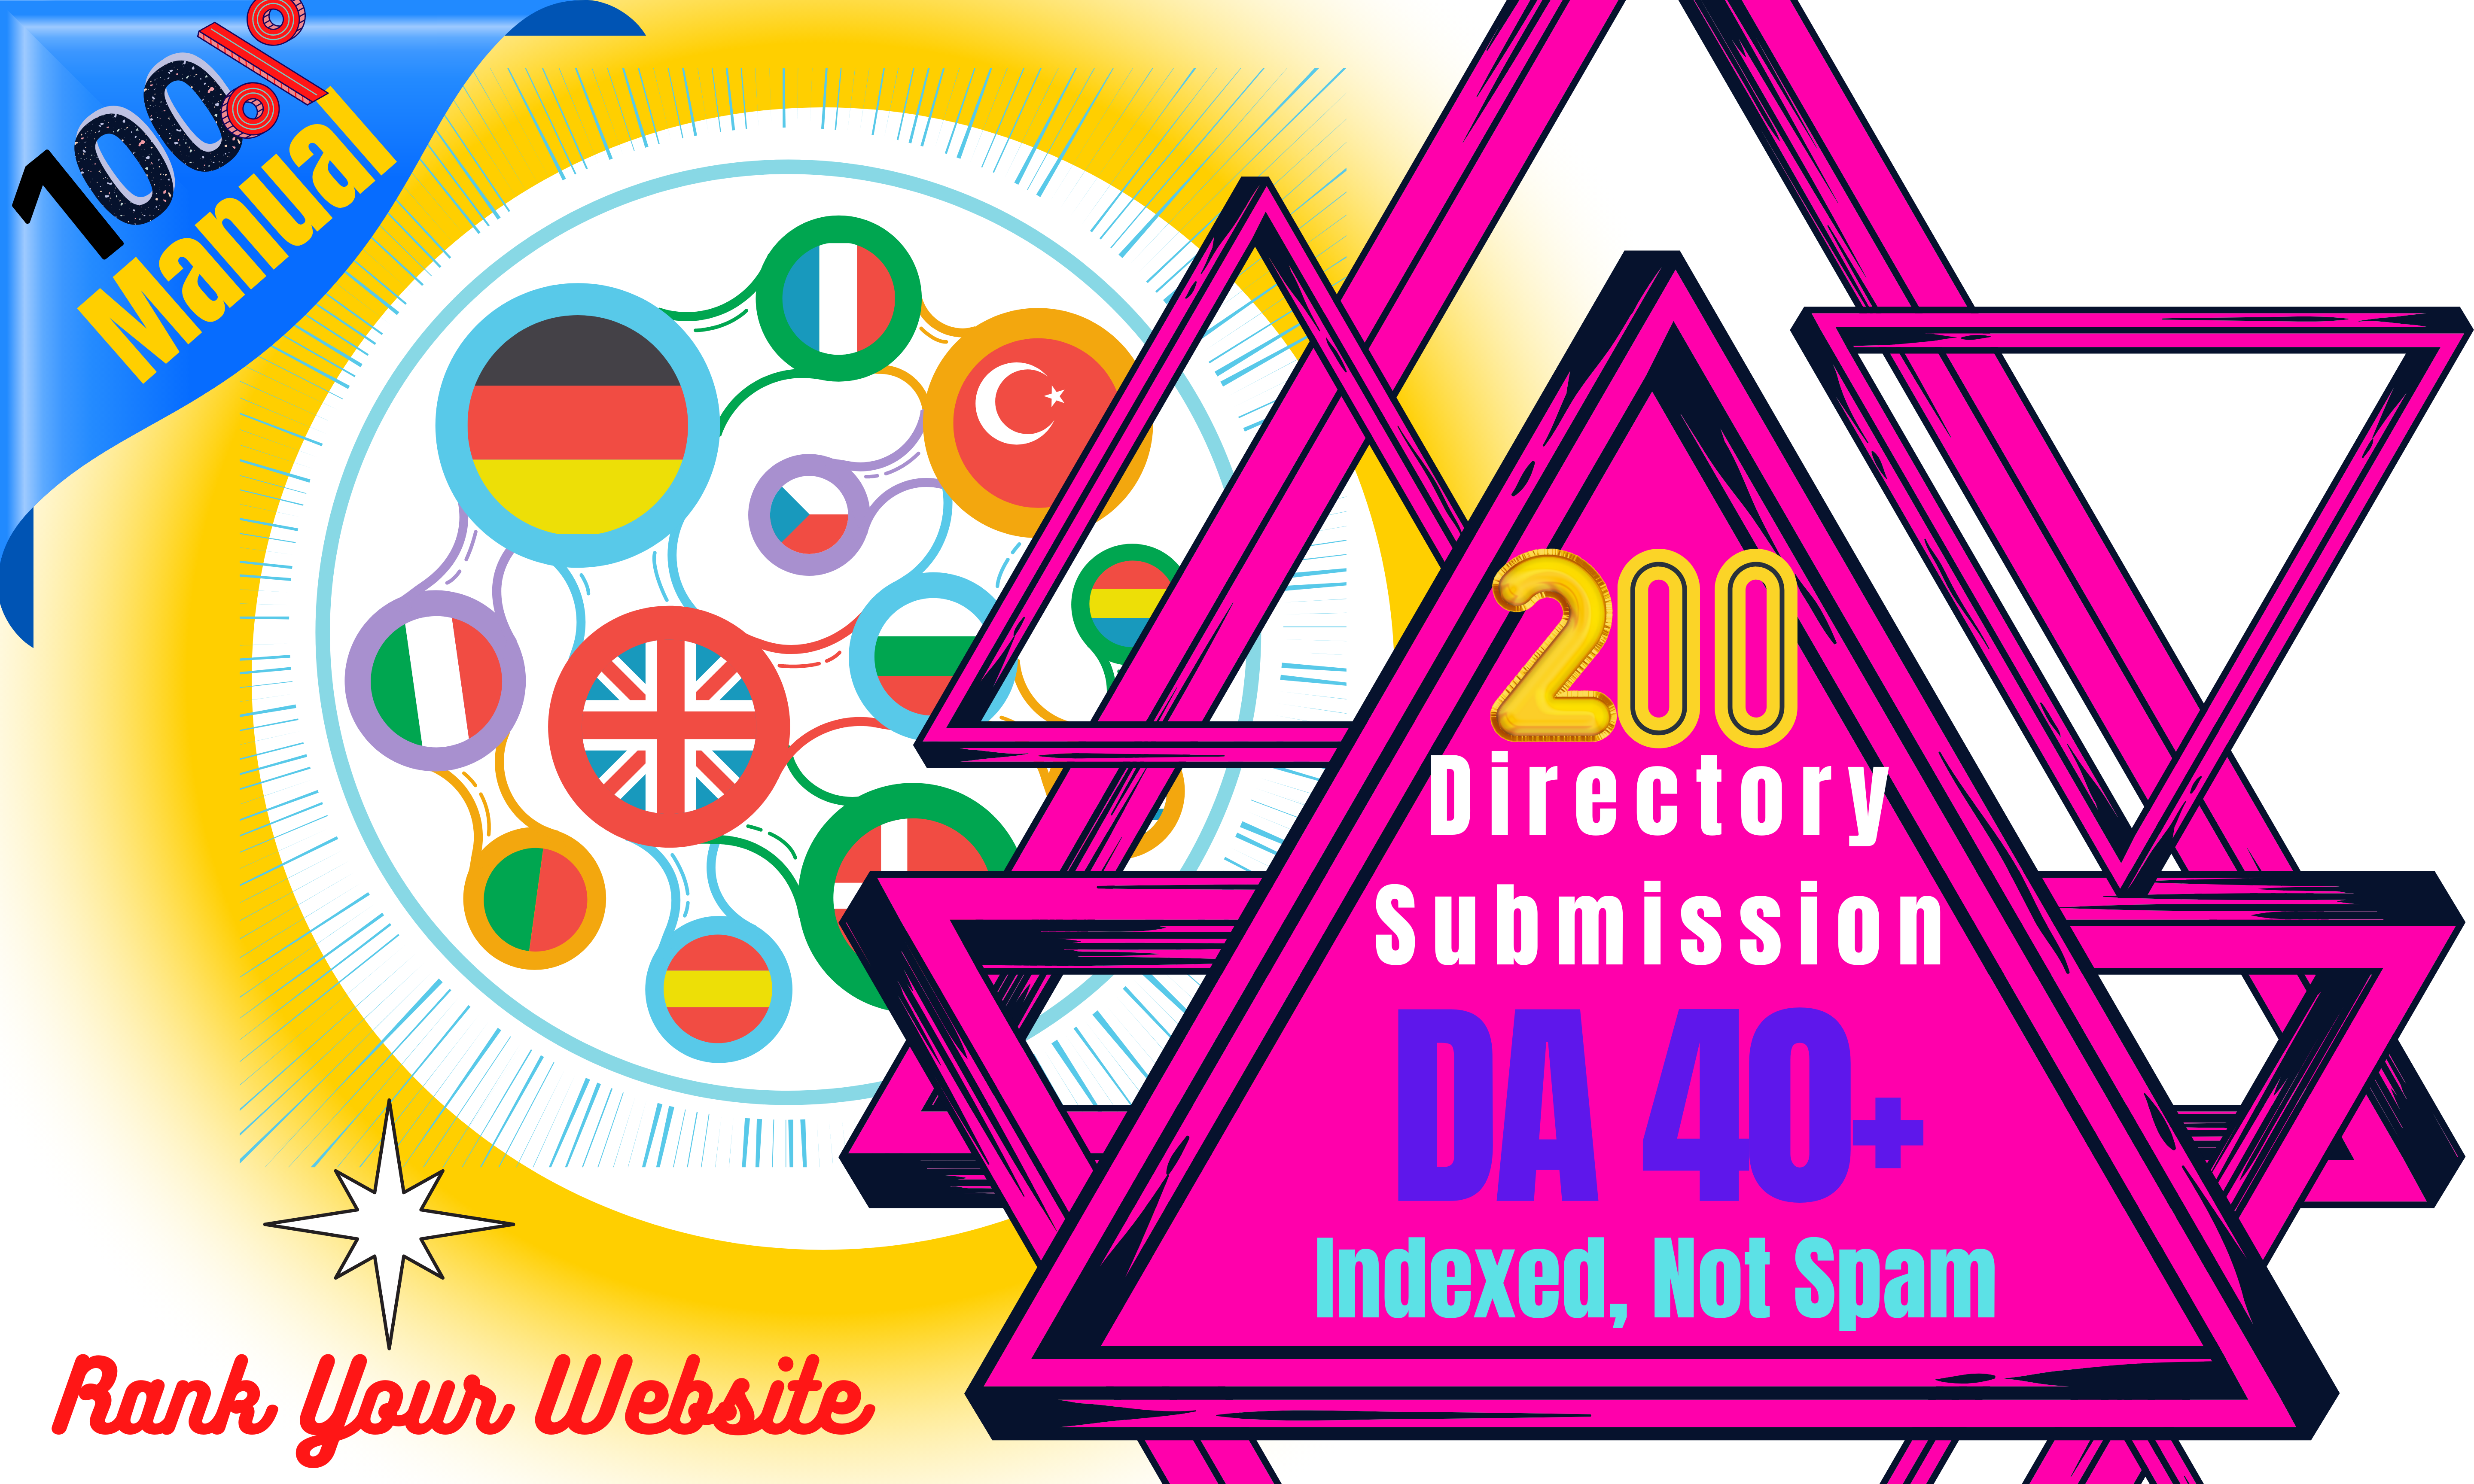 I will do 200 manual directory submission service high quality